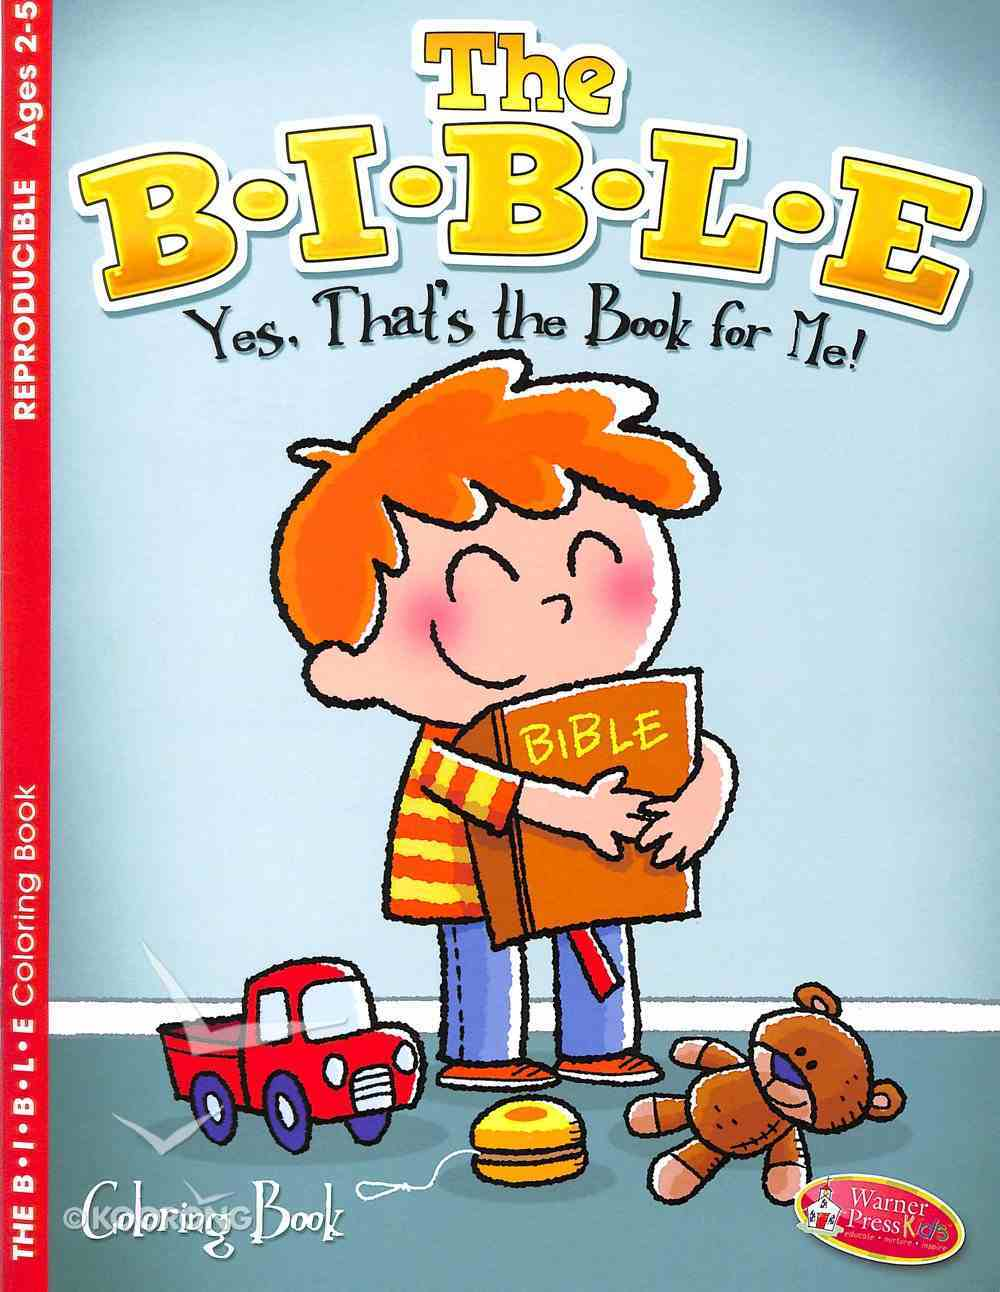 The B-I-B-L-E (Ages 2-5, Reproducible) (Warner Press Colouring/activity Under 5's Series) Paperback